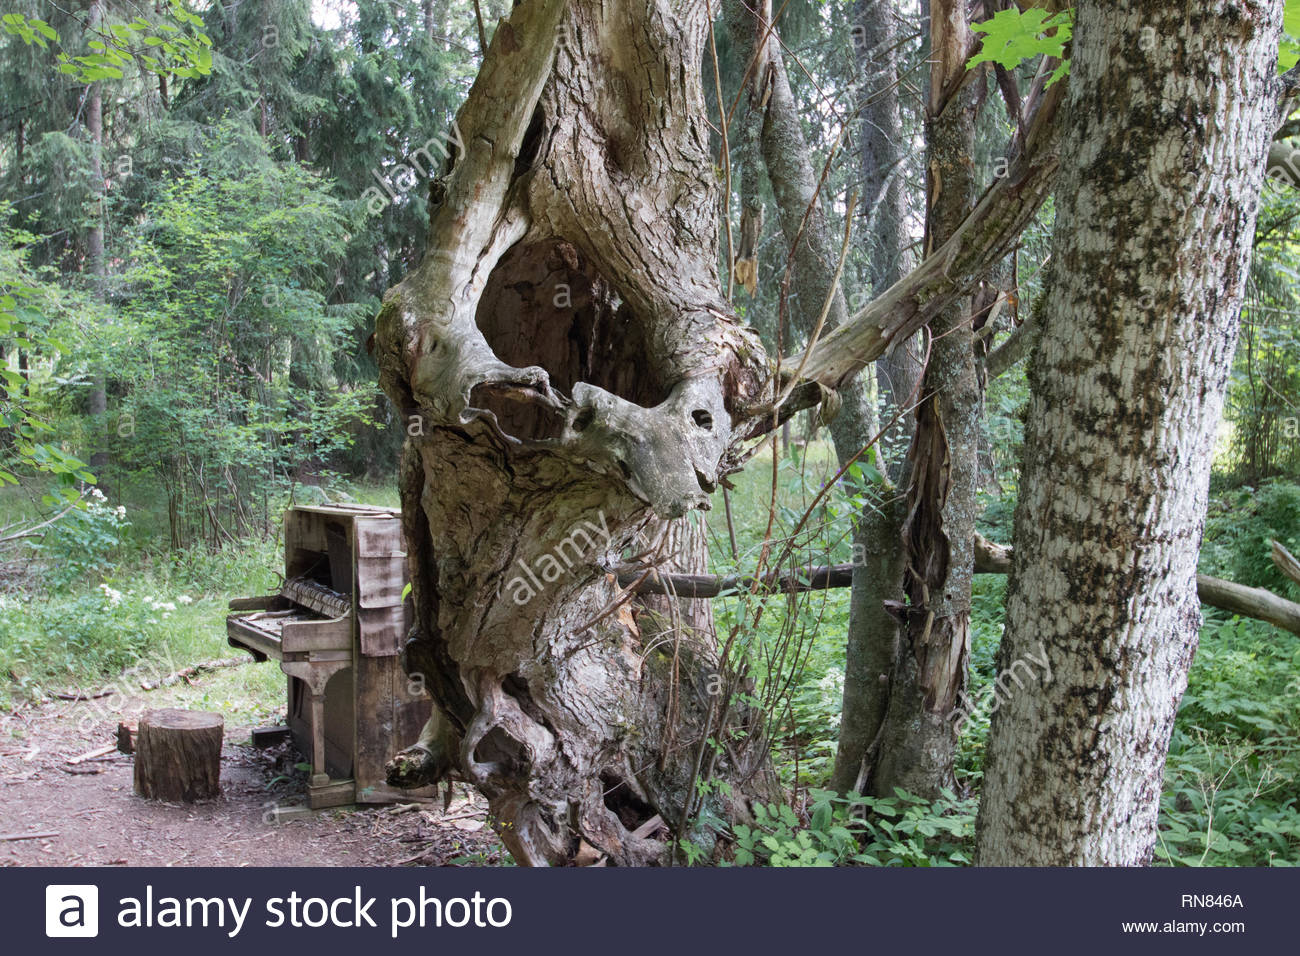 Curios formed tree like a tuba and an old piano in the wood - Stock Image